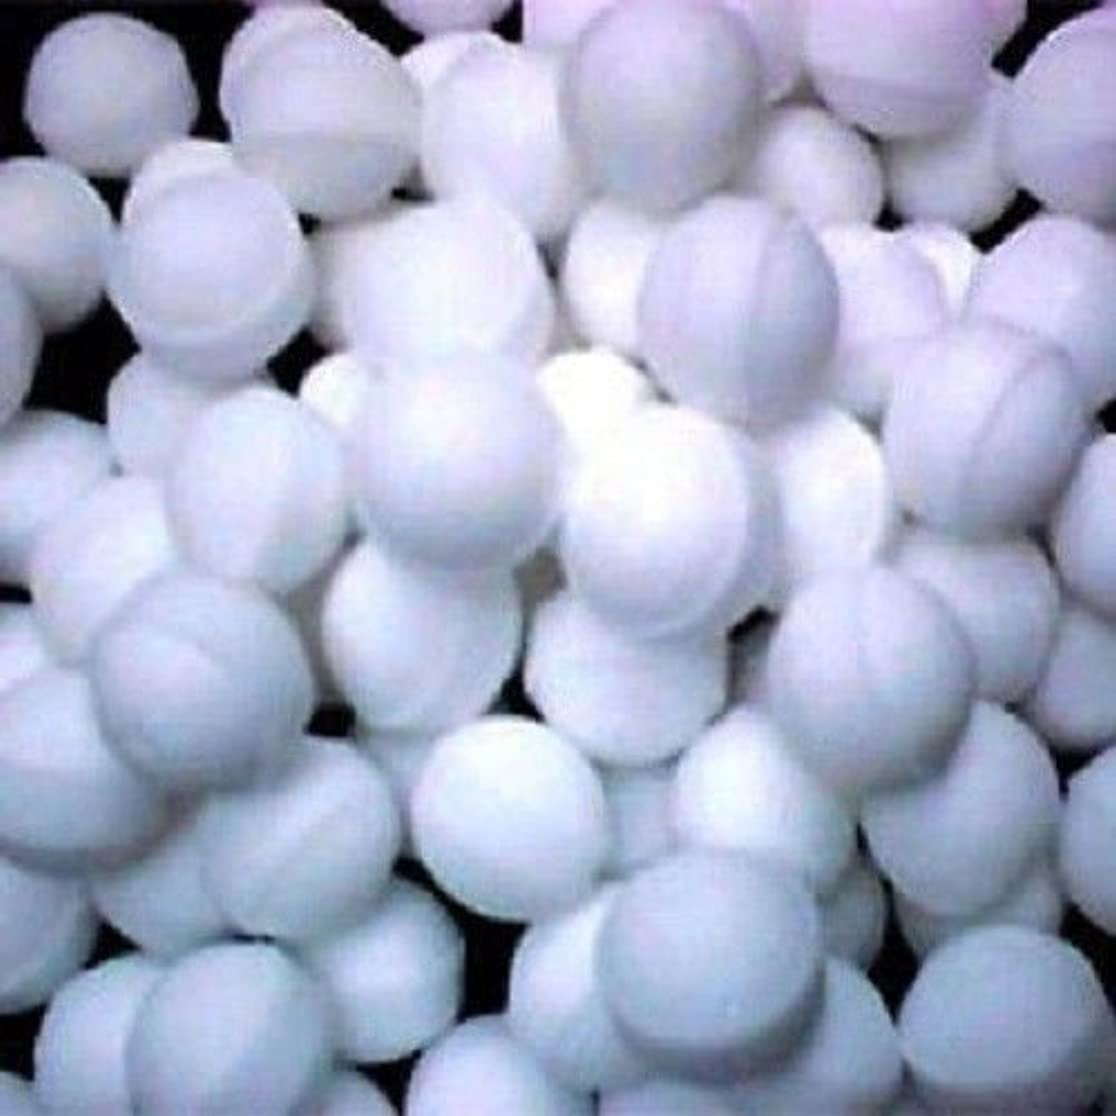 消費する苦痛レーニン主義Naphthalene Balls, Moth Balls,snow White,toilets,cupboards,books,cloth Mothballs- 50 Balls 100g Pack by Eagle...